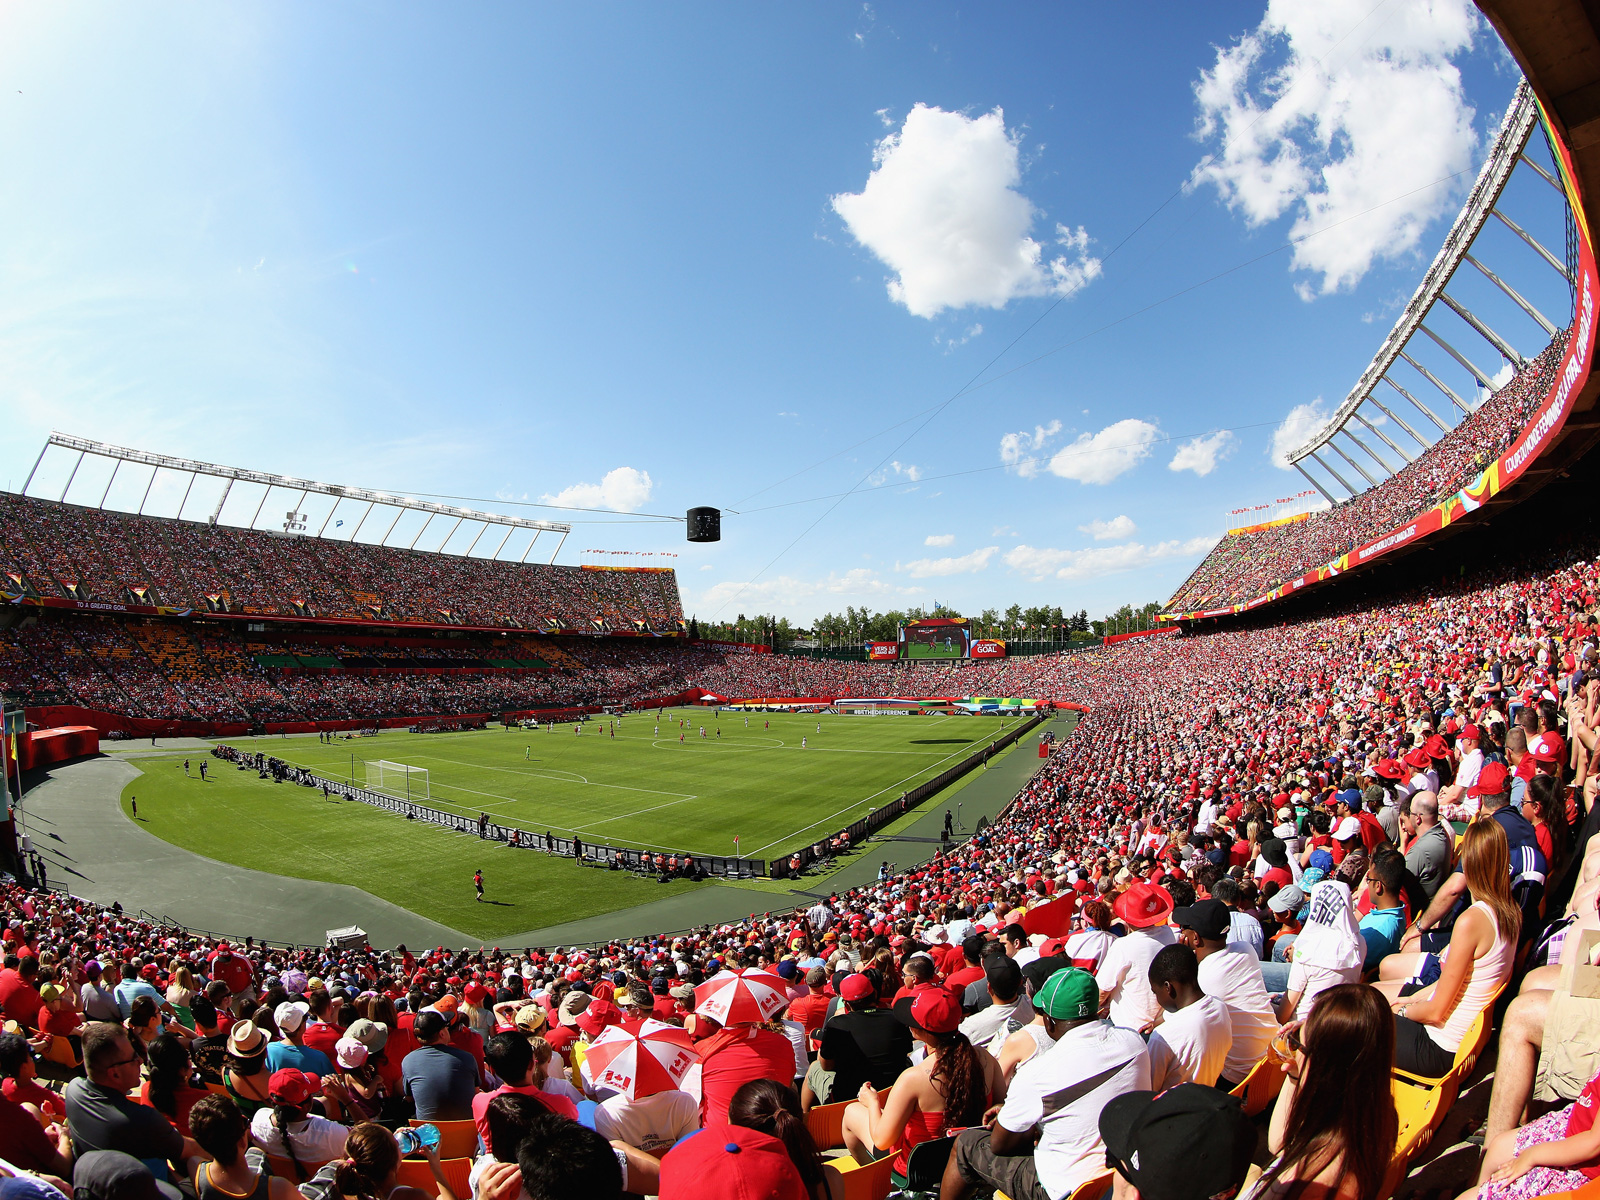 A crowd of 53,058 was on hand for Canada-China, a Canadian record for any national team in any sport.